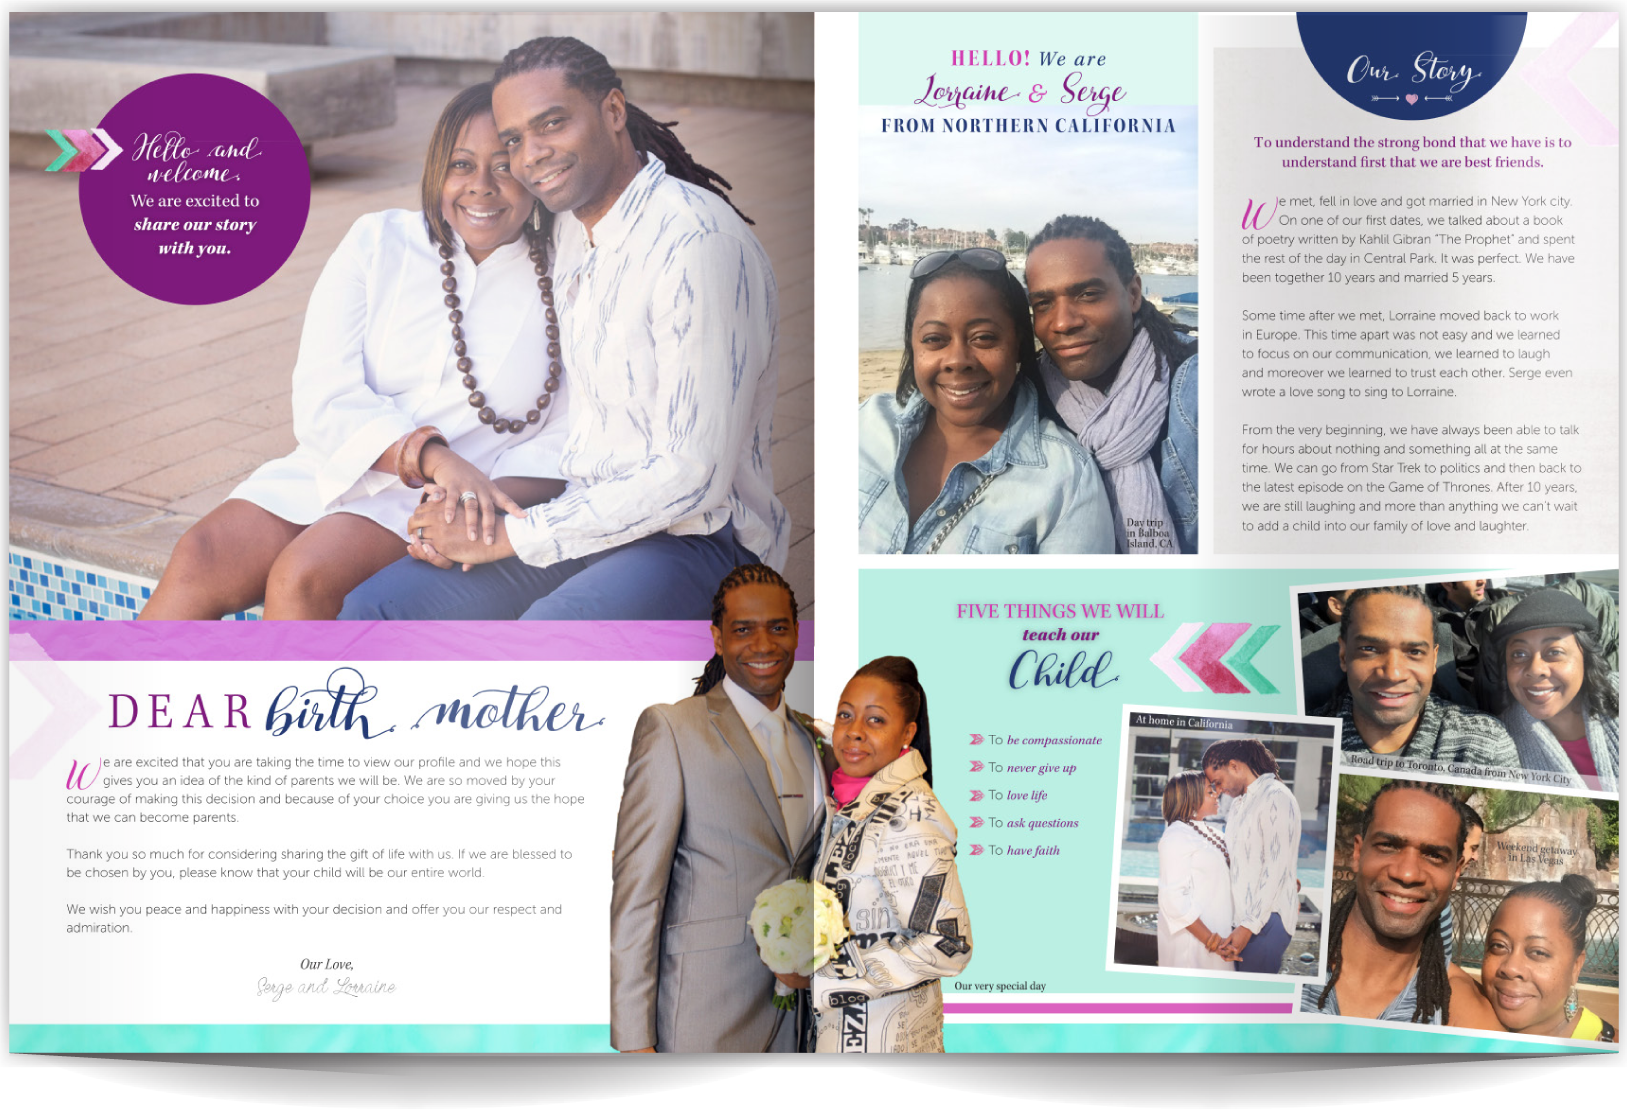 PAGE LAYOUT STYLE 7 - Clean, cool, and collected. Soft seaside colors with a few high-impact colors and graphics make this layout sing. A few great photos can blend with everyday photos in this layout that blends copy, short lists, and a calligraphic font!